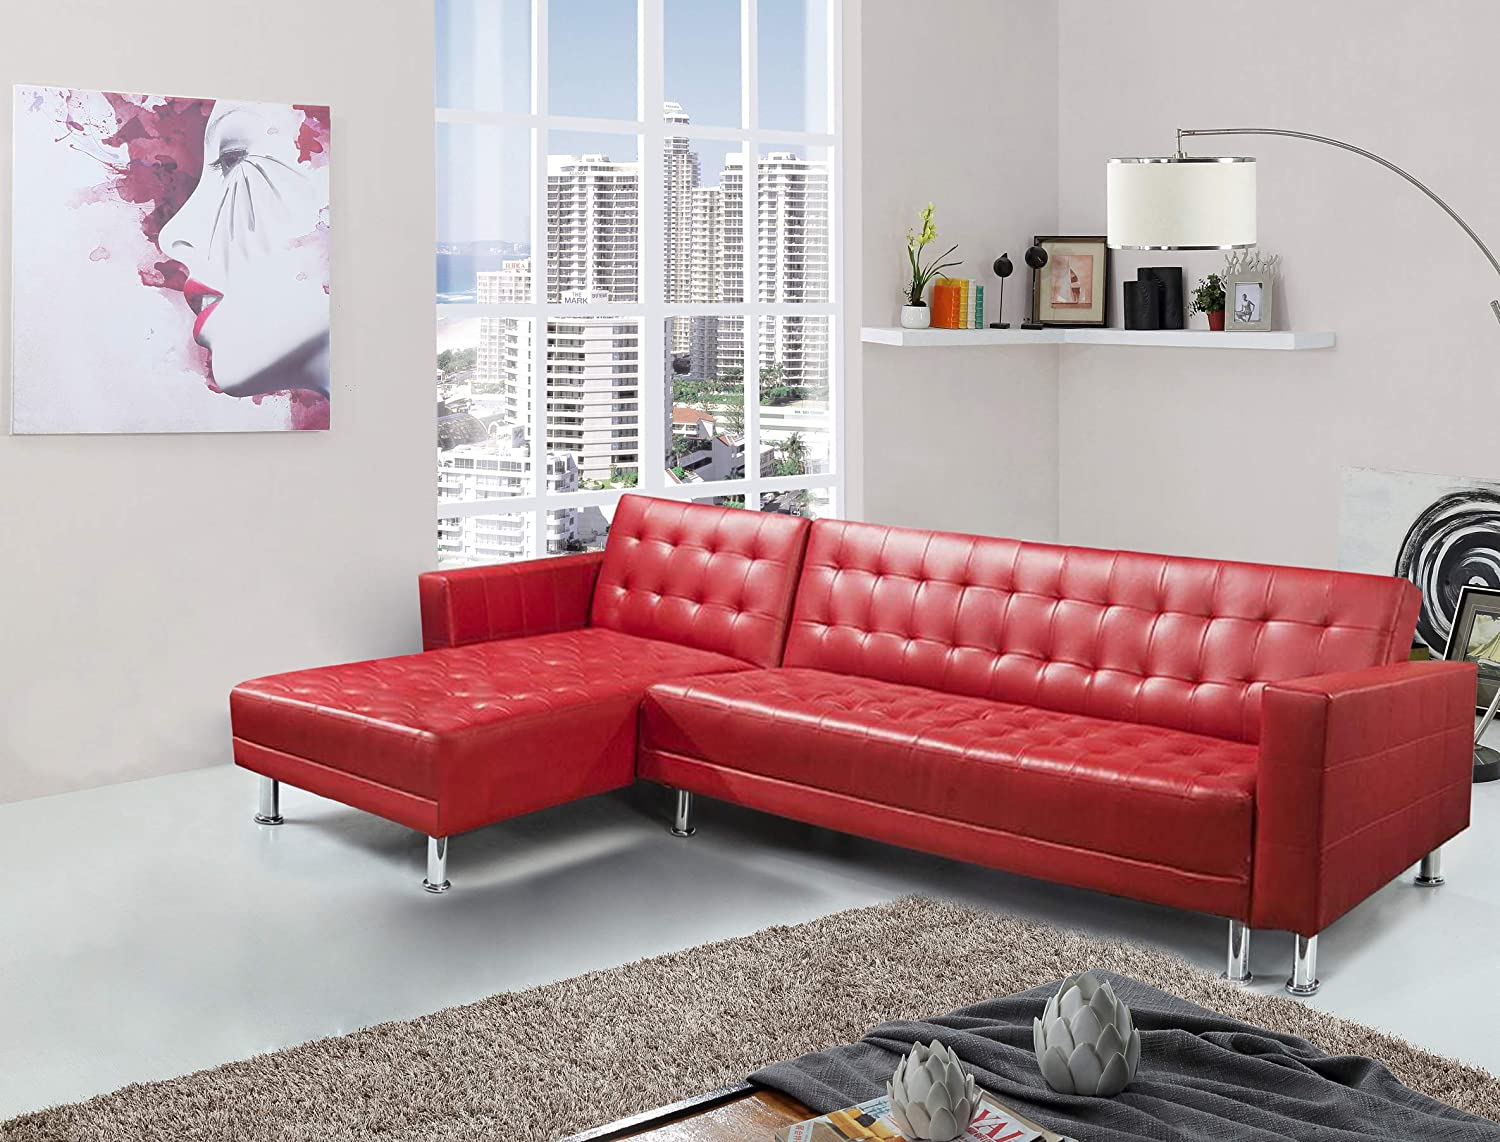 Greatime free shipping Leatherette Convertible Section Popular Red Leathe Sofa Faux